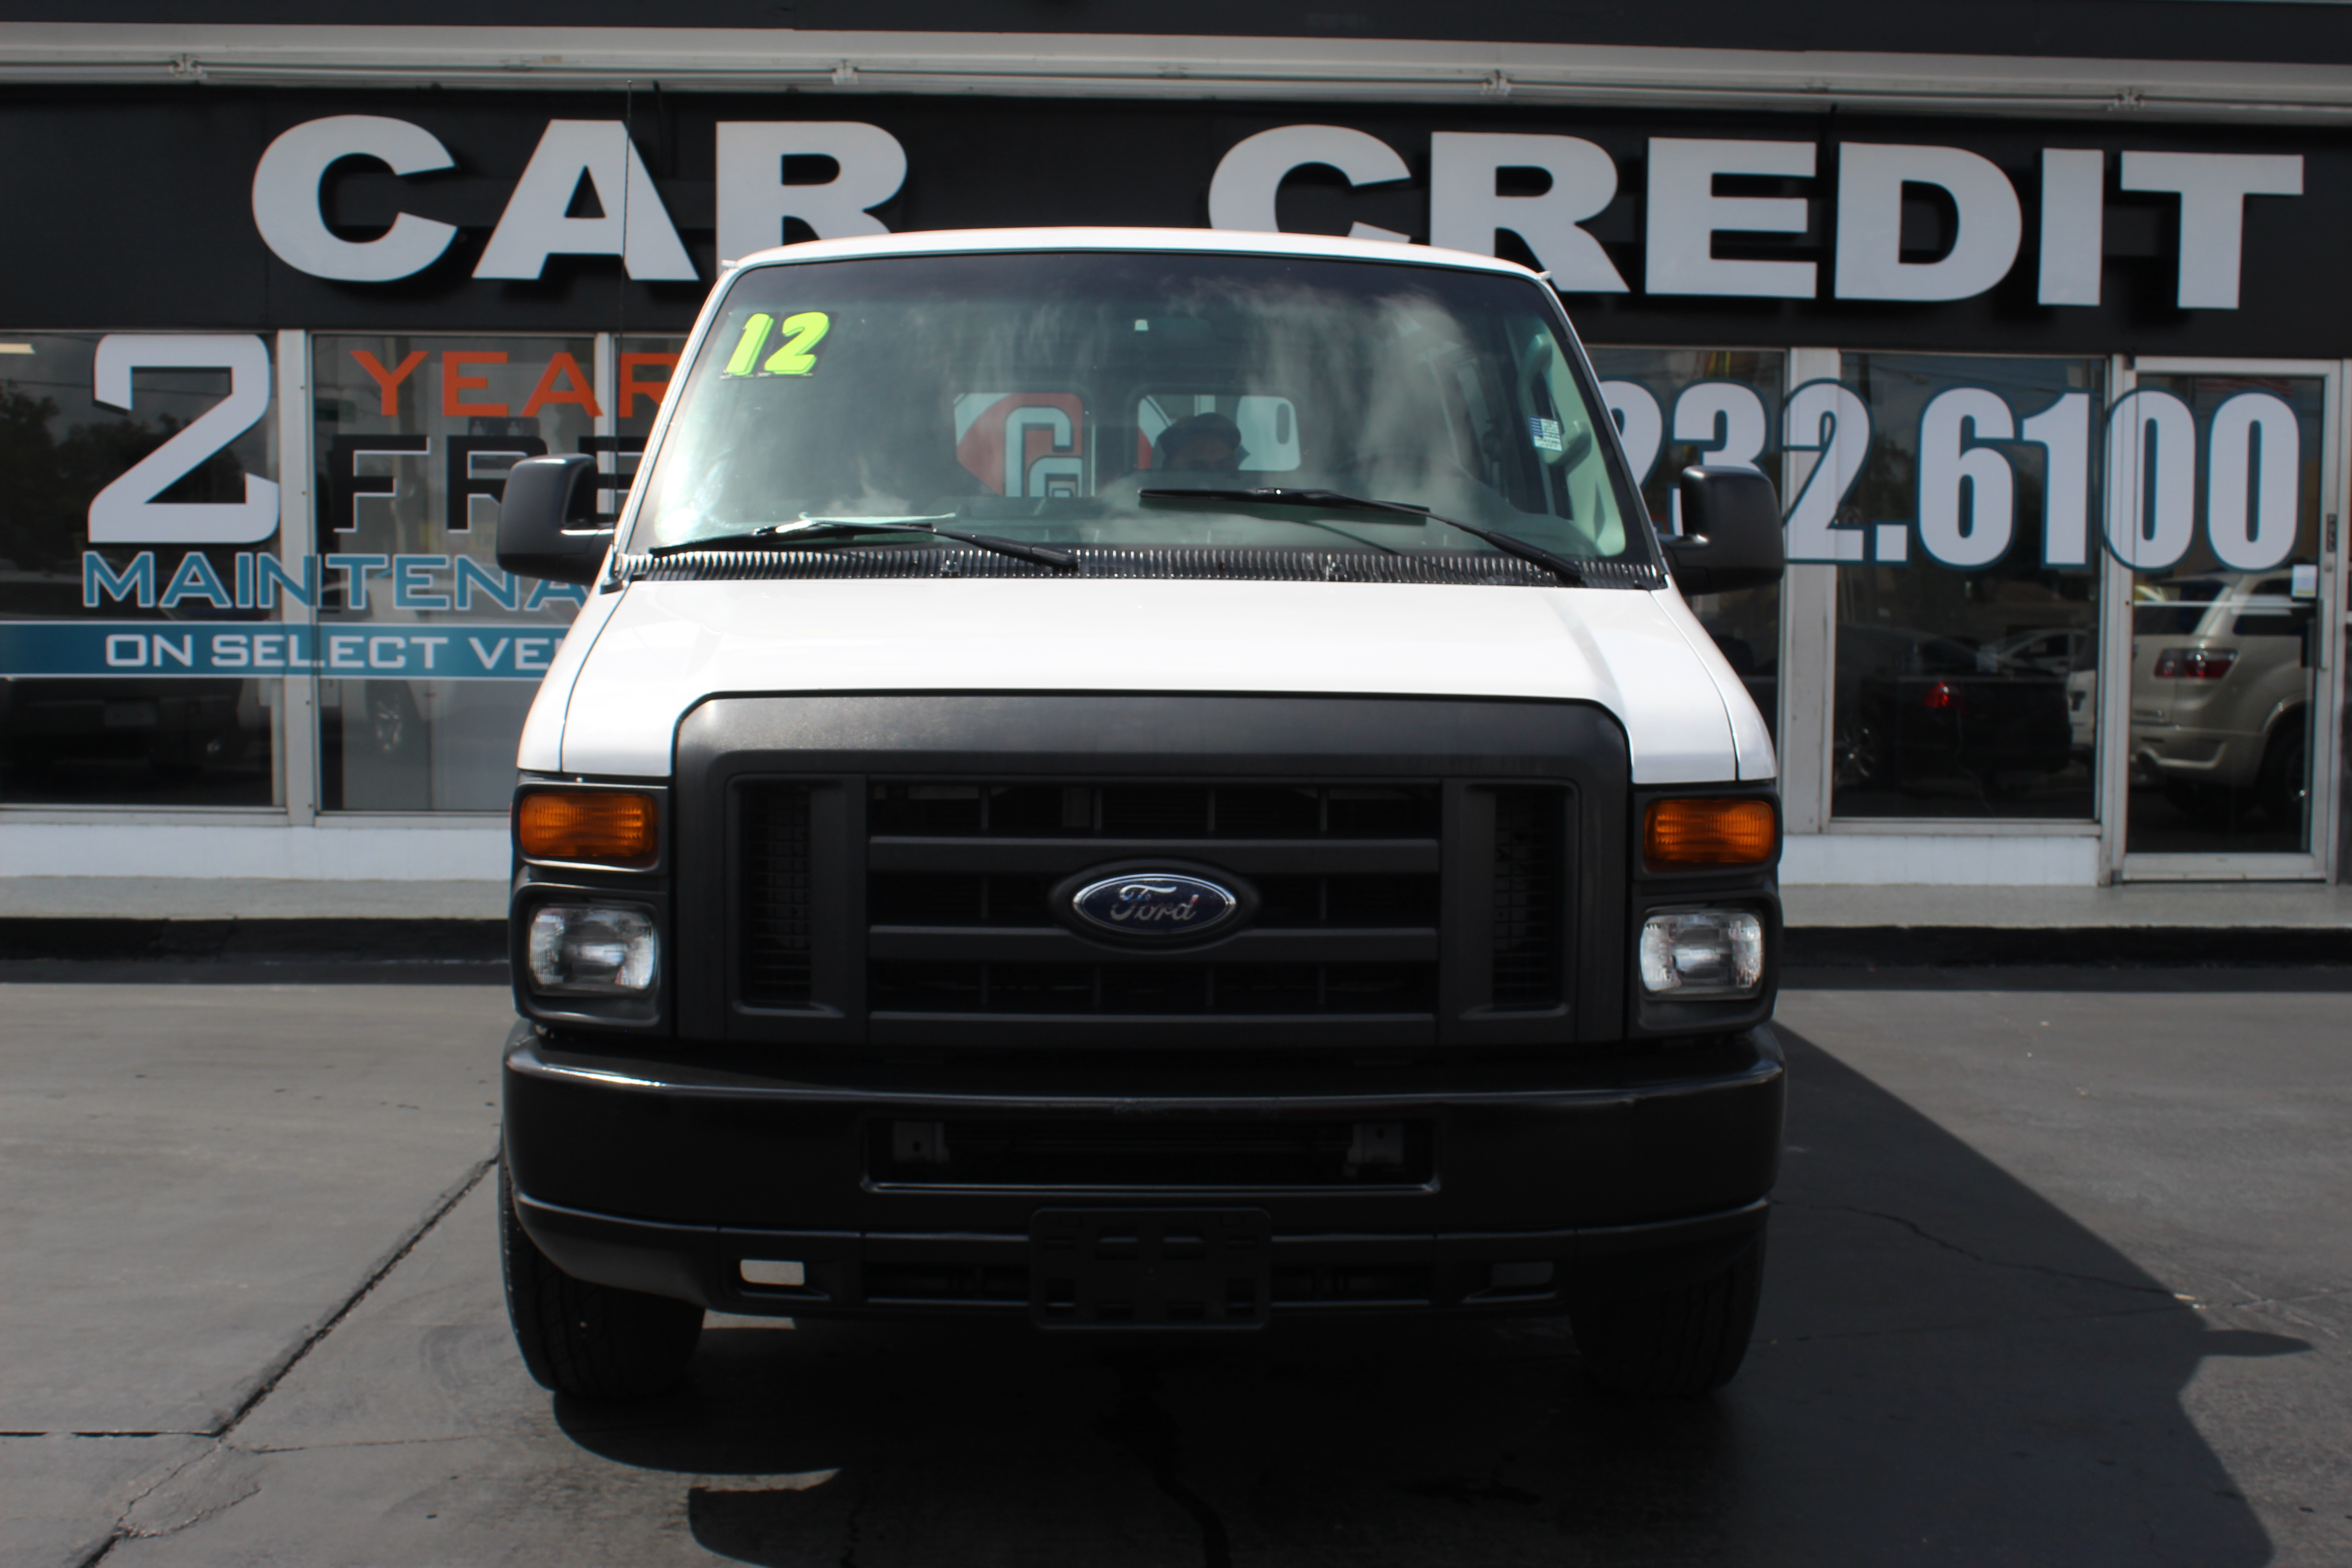 Pre-Owned 2012 Ford Econoline Cargo Van